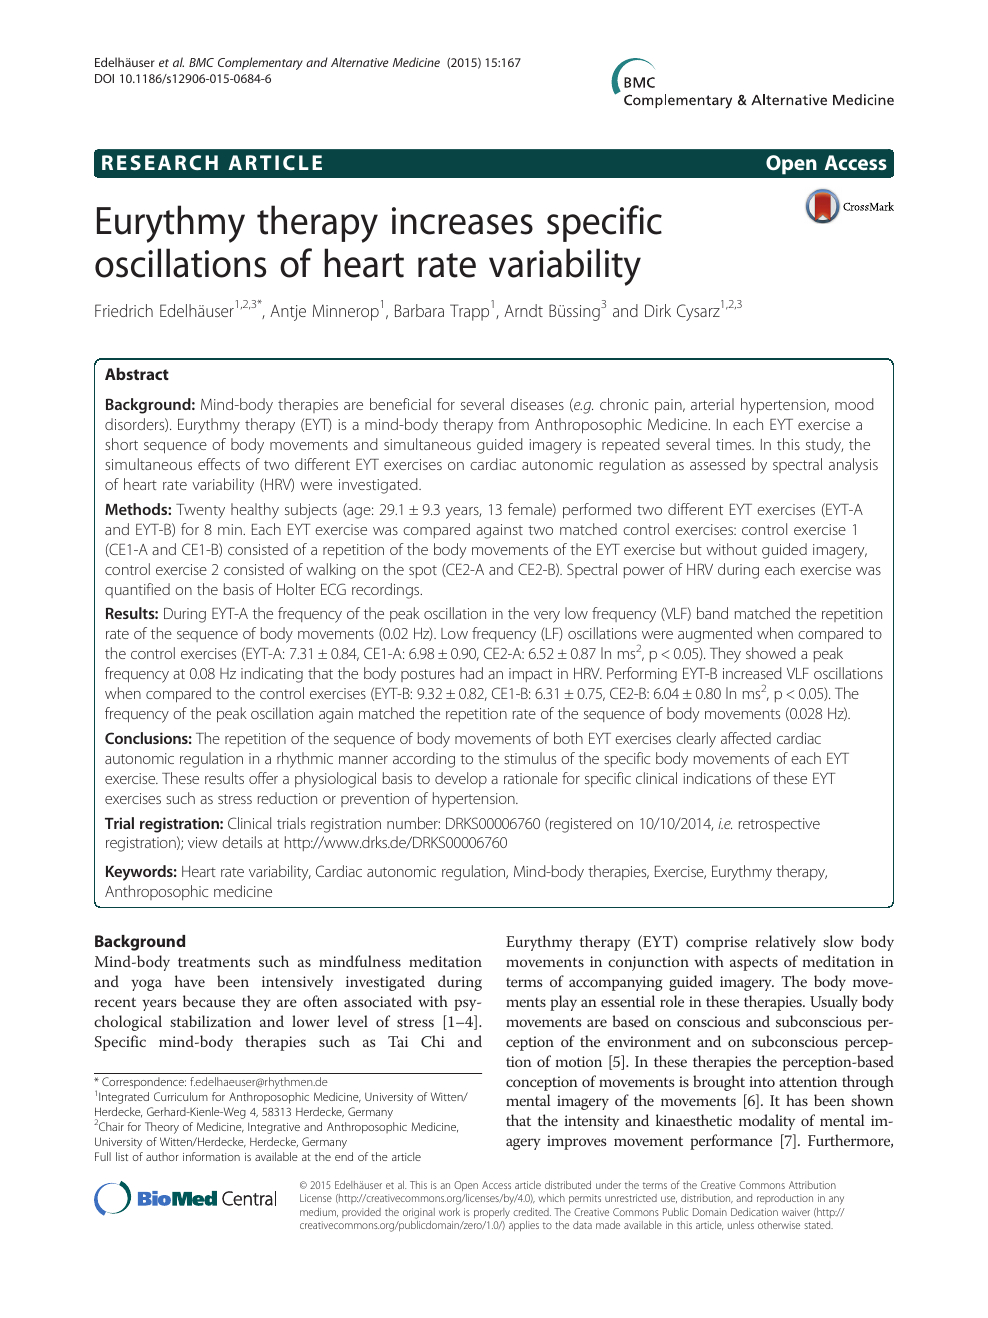 Eurythmy Therapy Increases Specific Oscillations Of Heart avec Reproduction De Figures Ce1